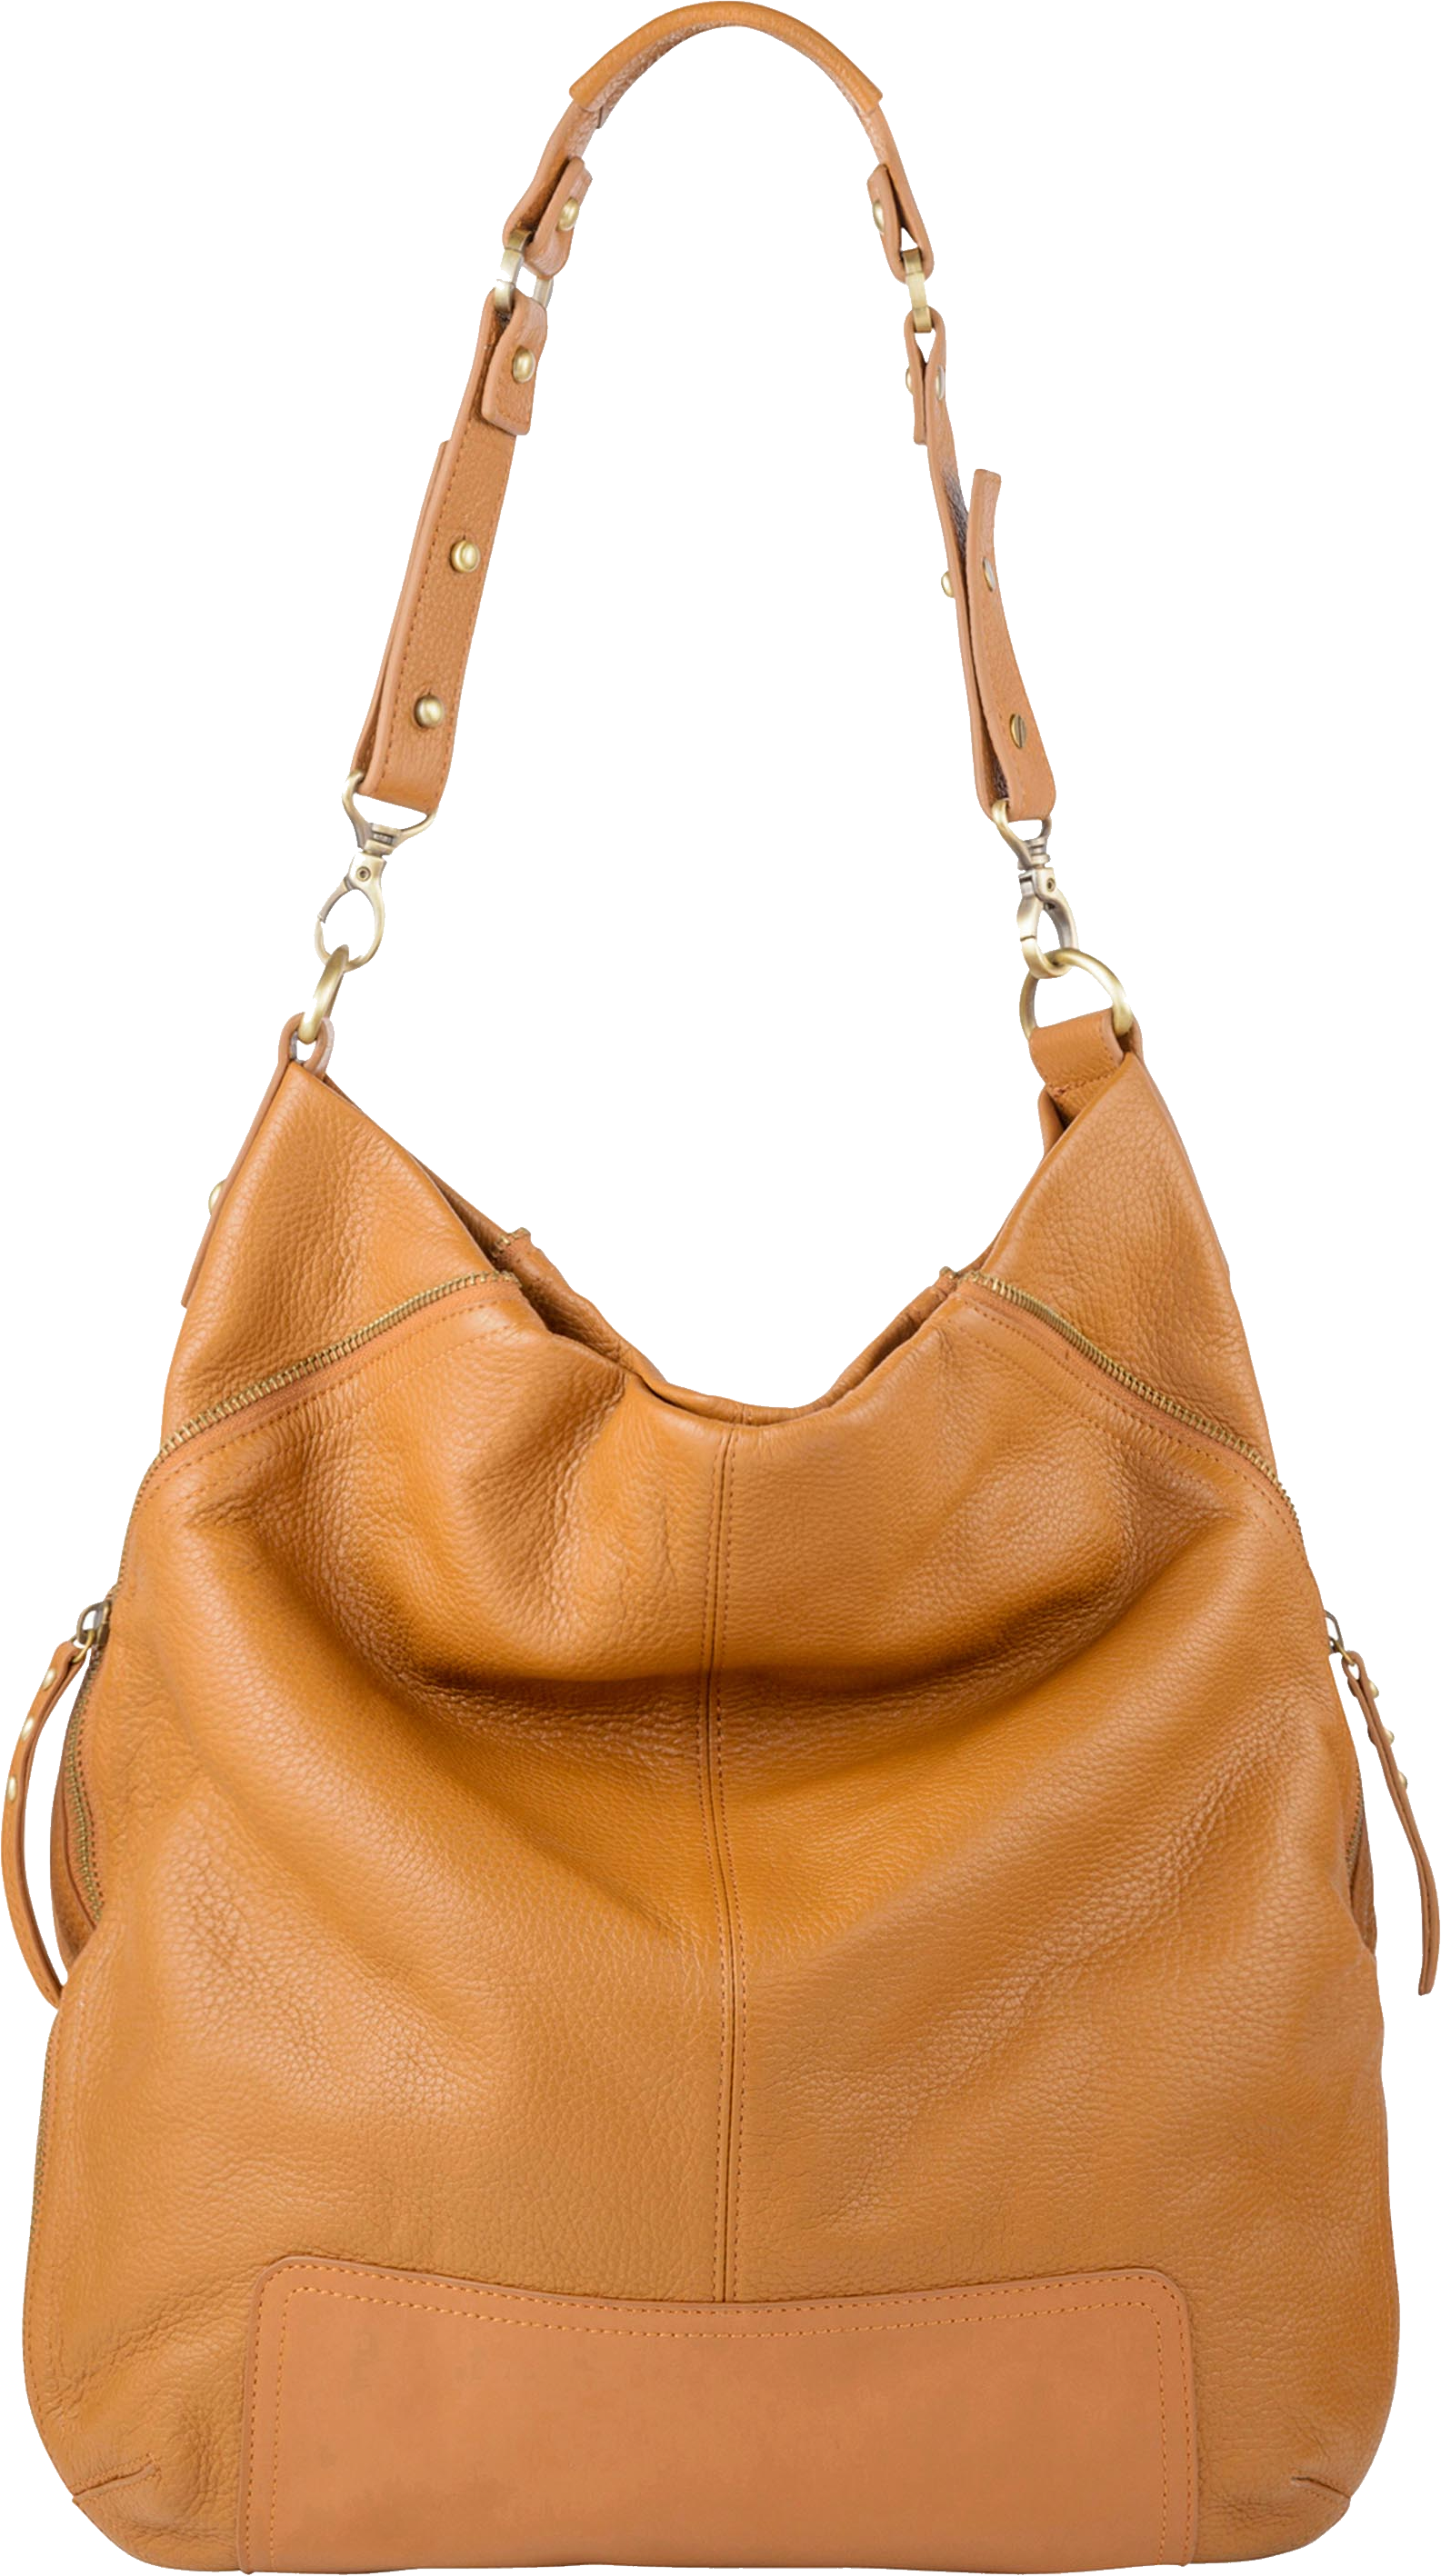 Leather women bag PNG image - Womensbag HD PNG